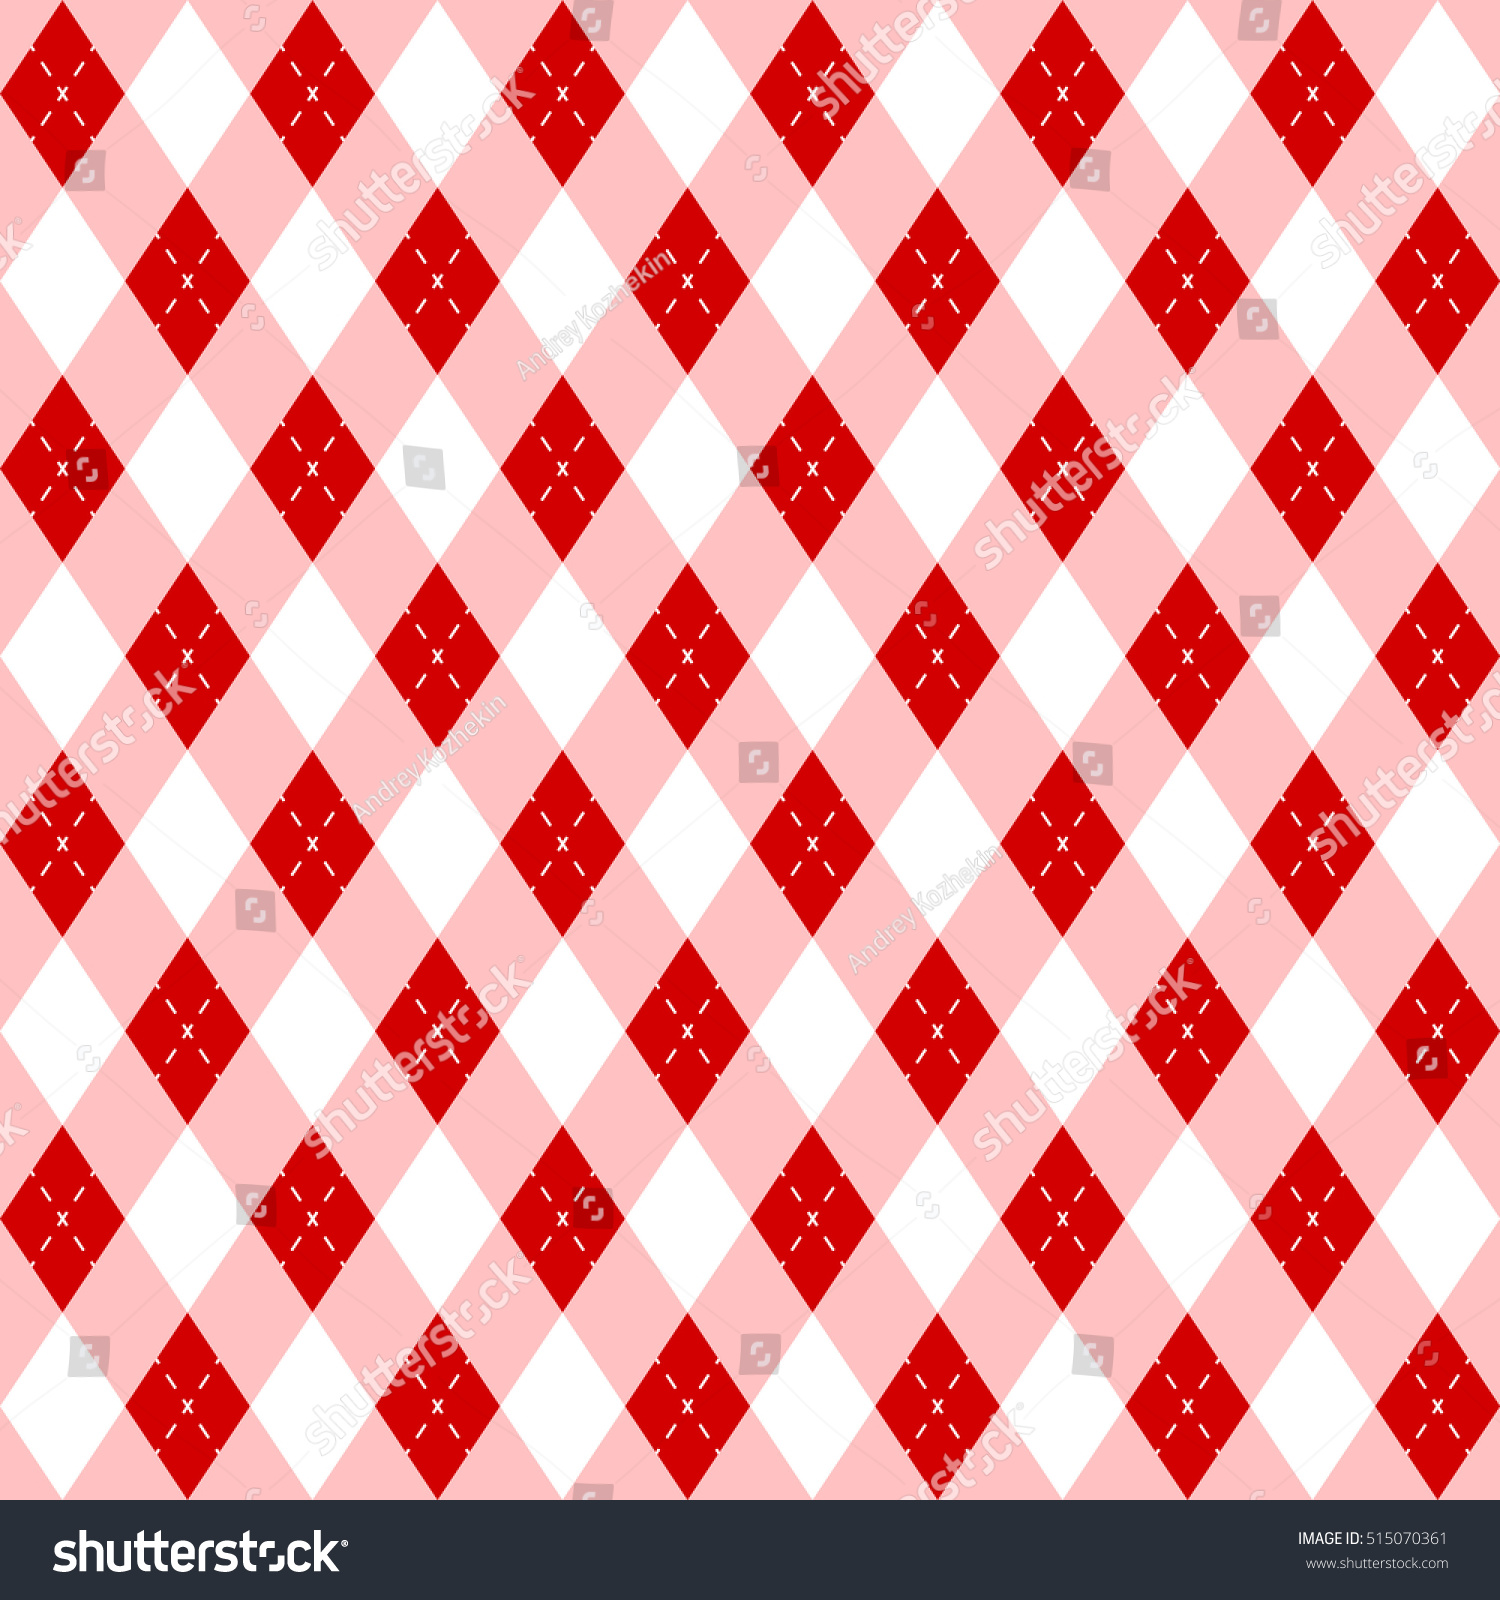 Christmas Seamless Wrapping Paper Pattern Rhombuses And Striped Lines Vector